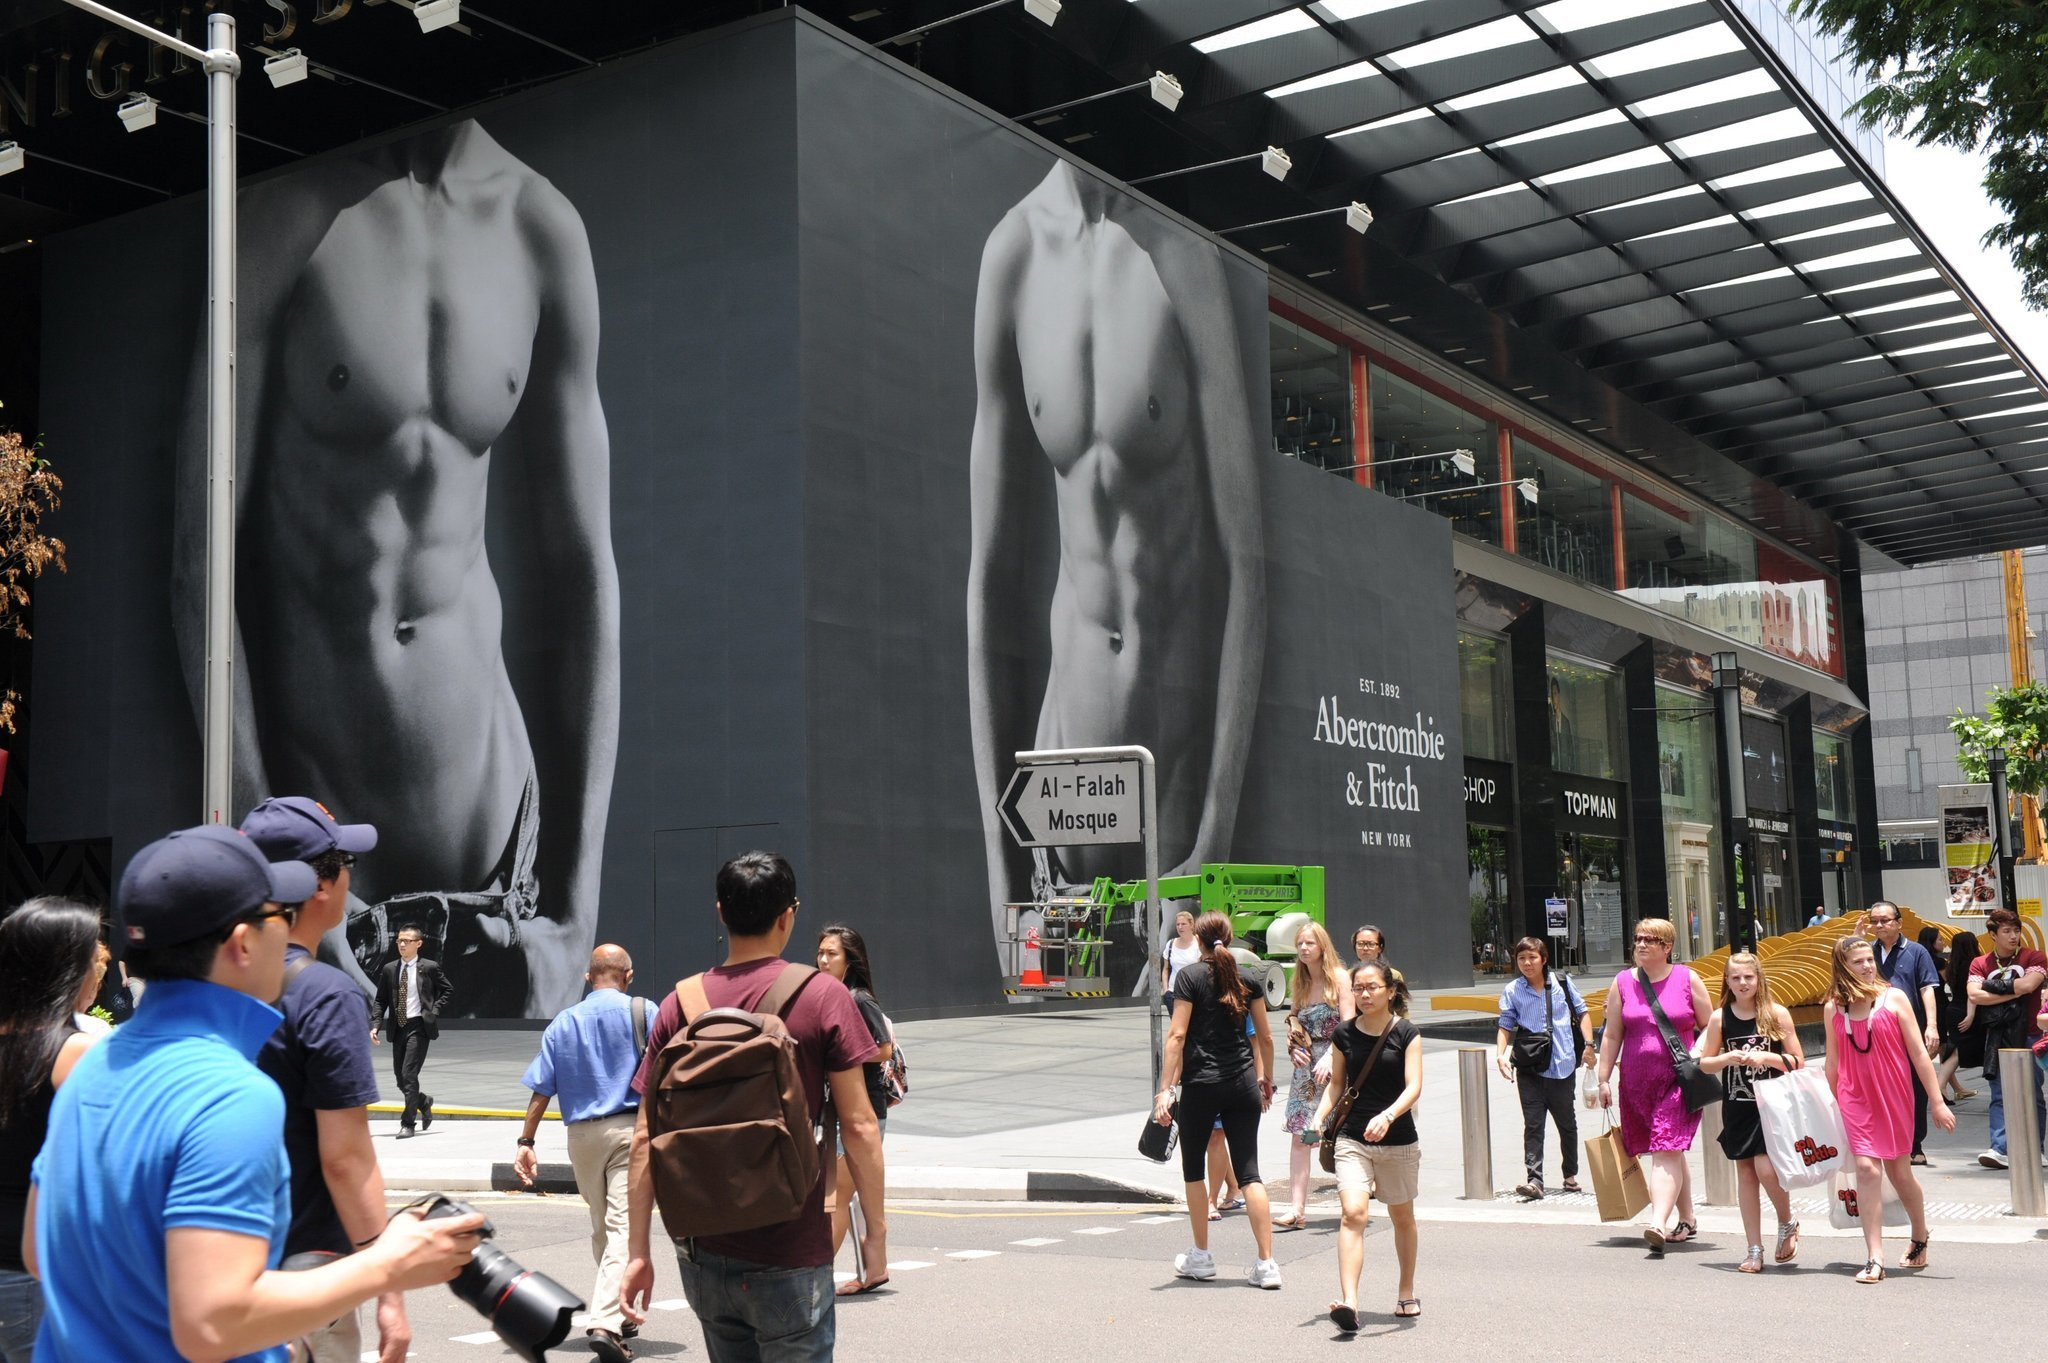 Abercrombie Used To Be A Store Where You Could Buy Guns